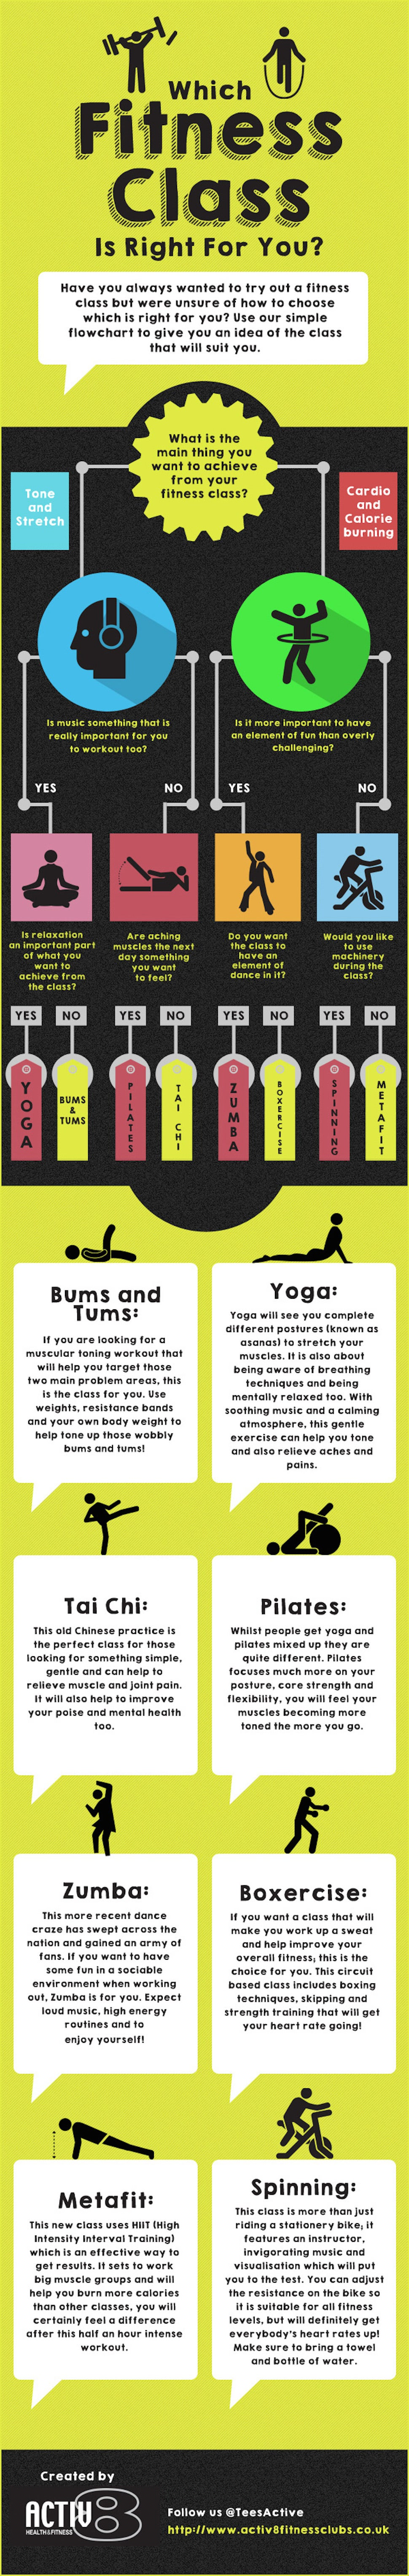 This Graphic Helps You Choose the Right Fitness Class for You